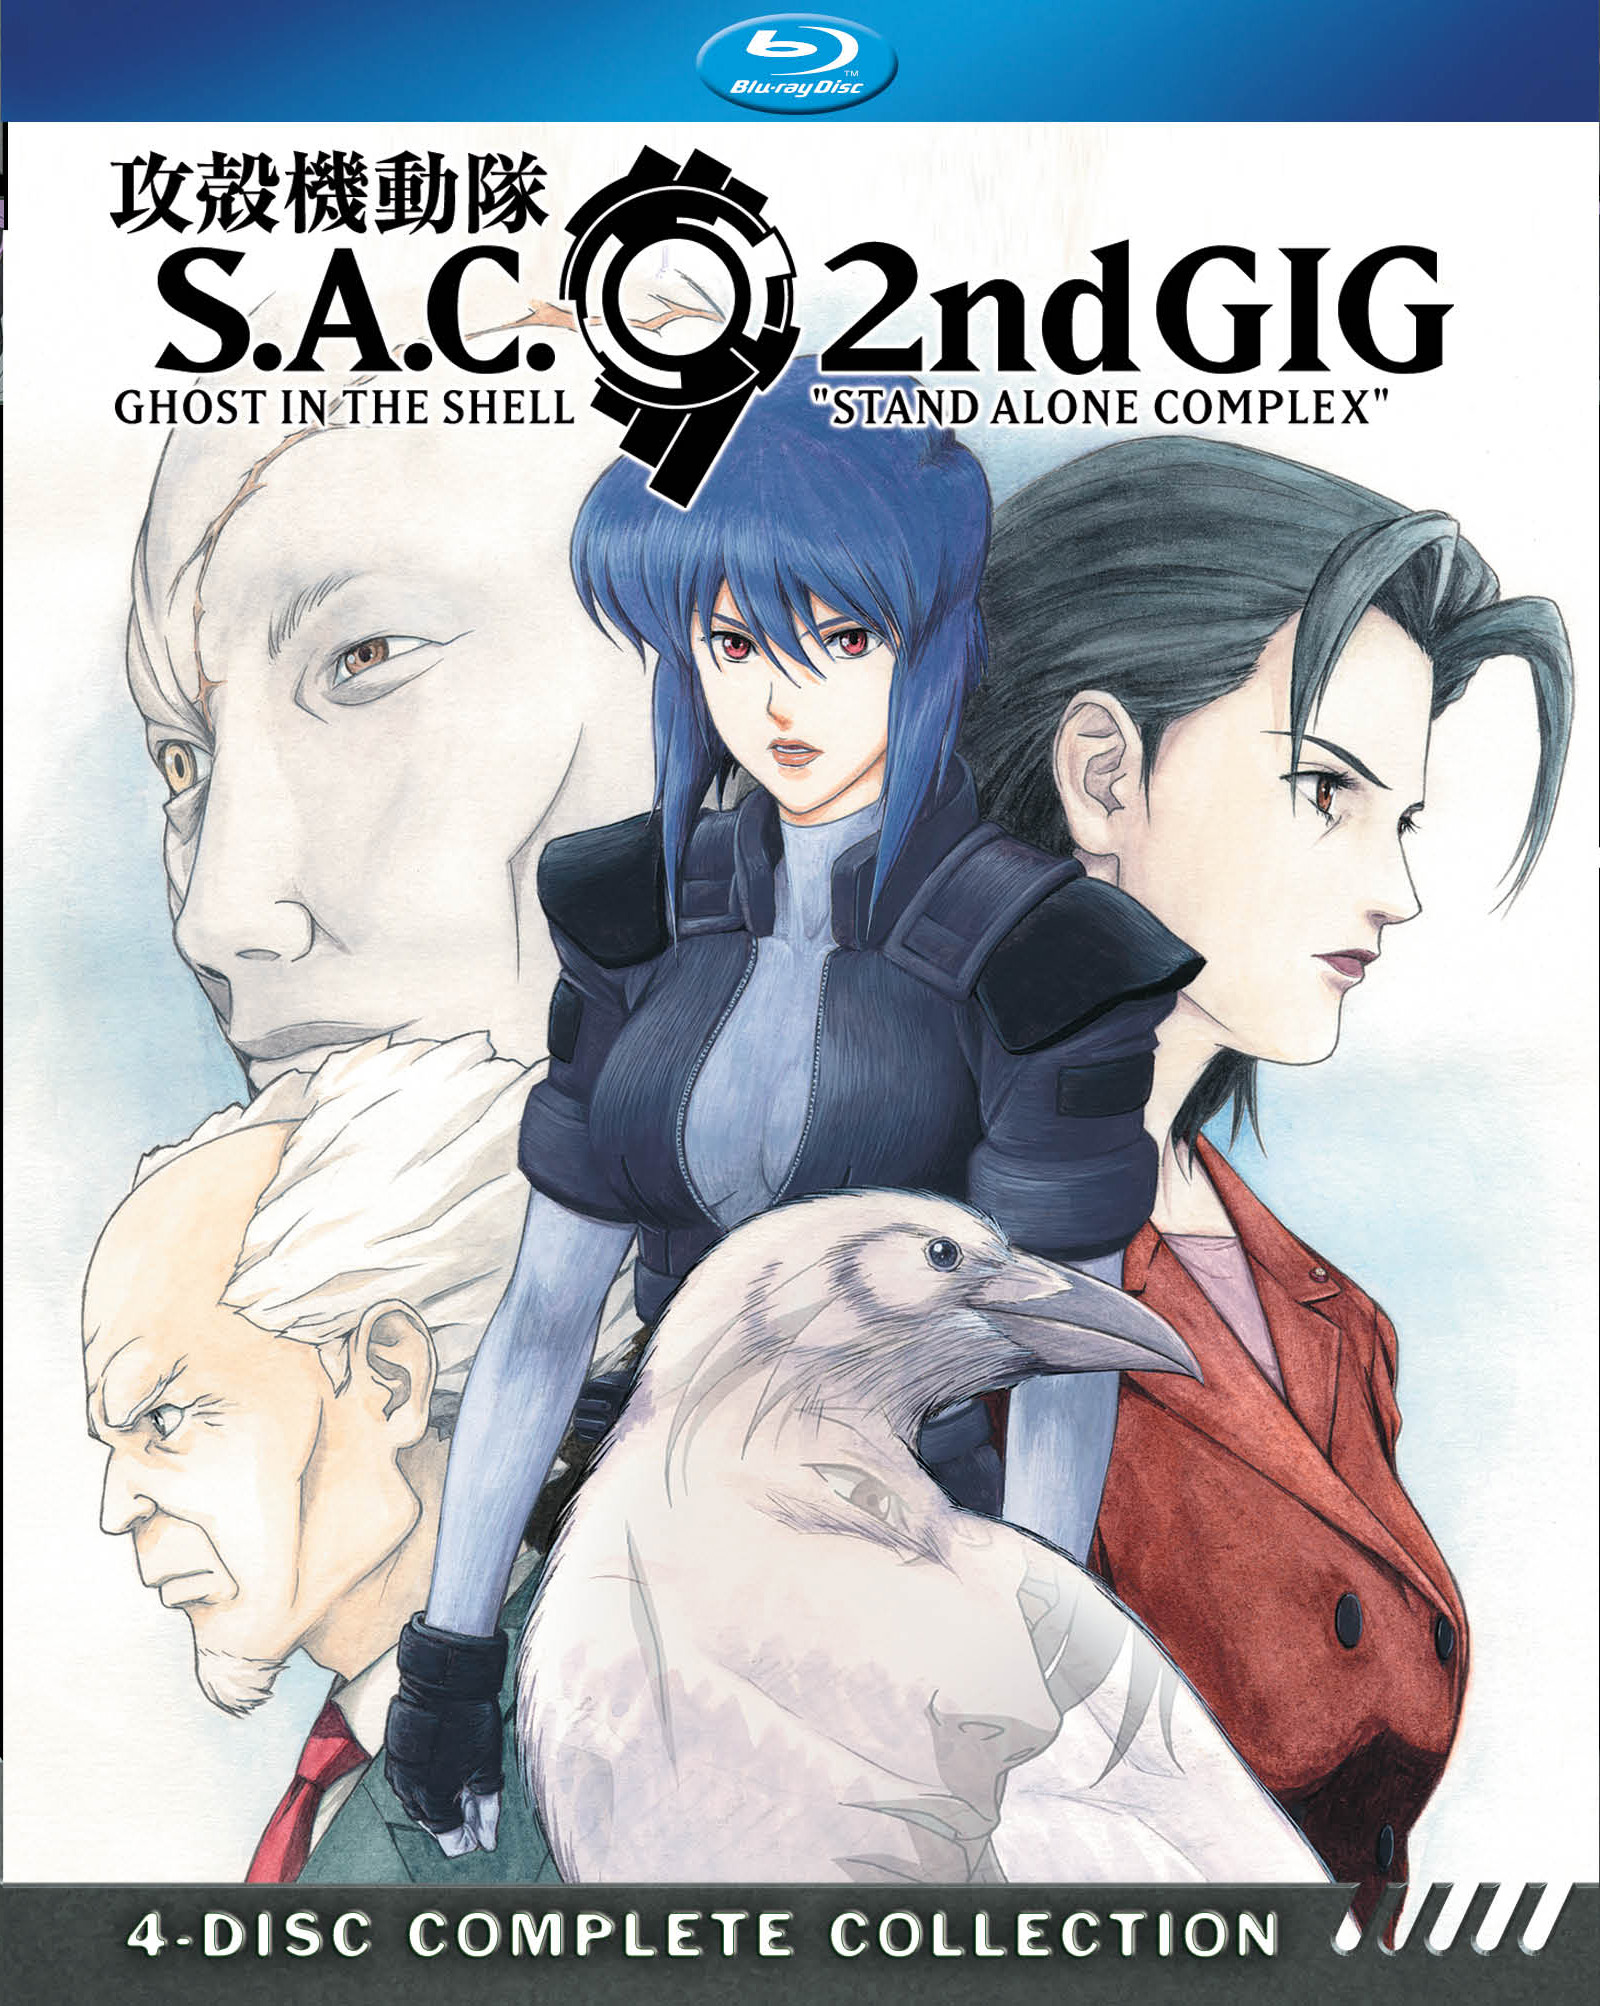 Ghost in the Shell: Stand Alone Complex 2nd Gig Blu-ray 013132650906